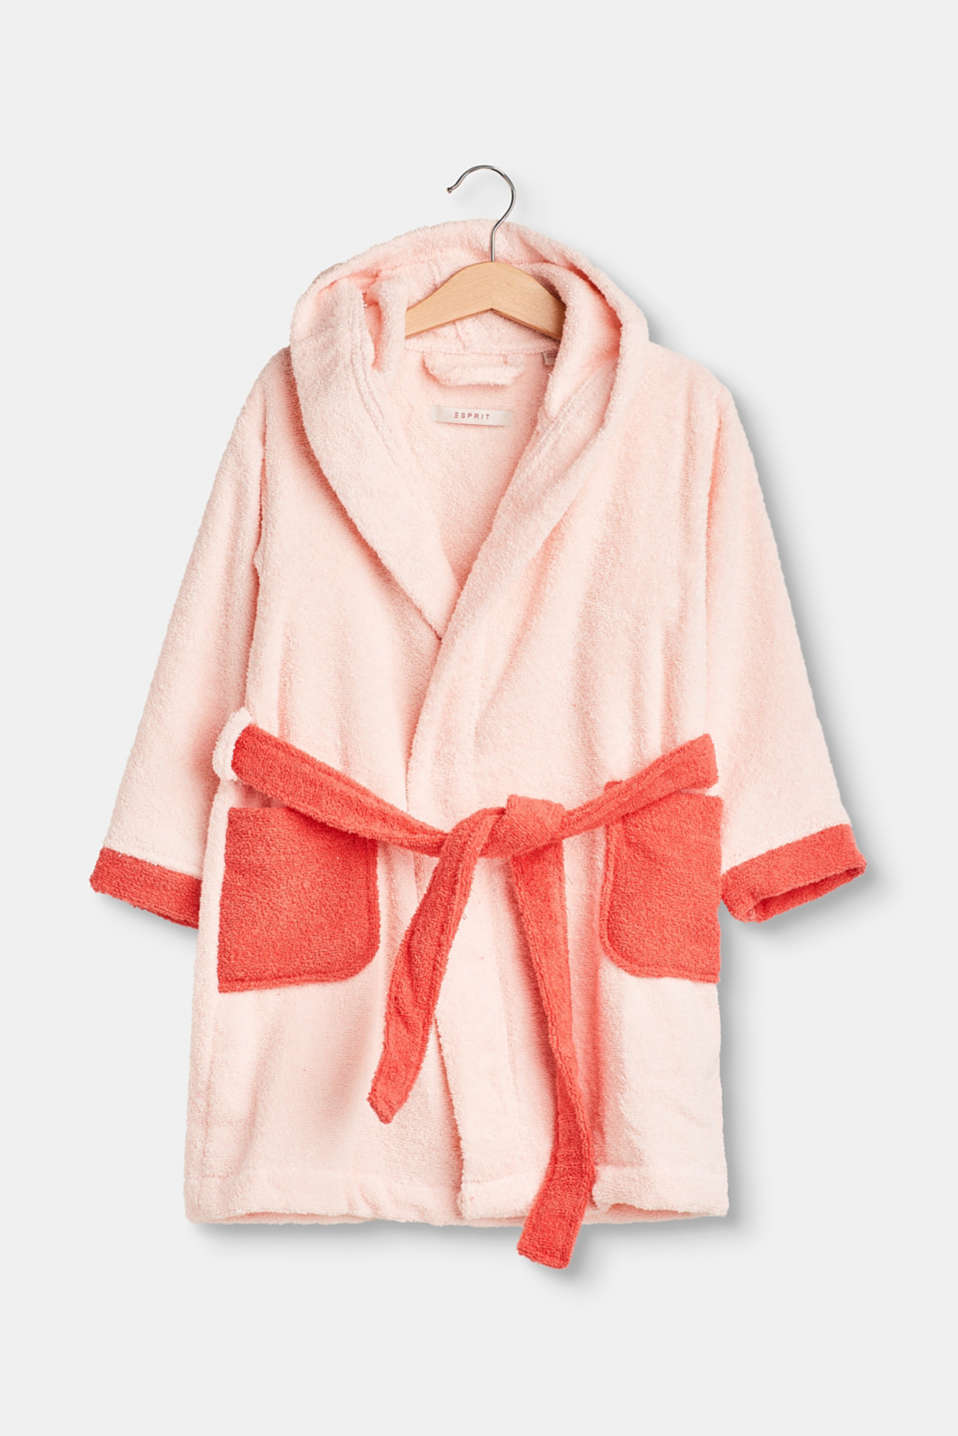 CASY collection – contrasting coloured accent and the terrycloth fabric make this bathrobe a favourite piece for wellness.